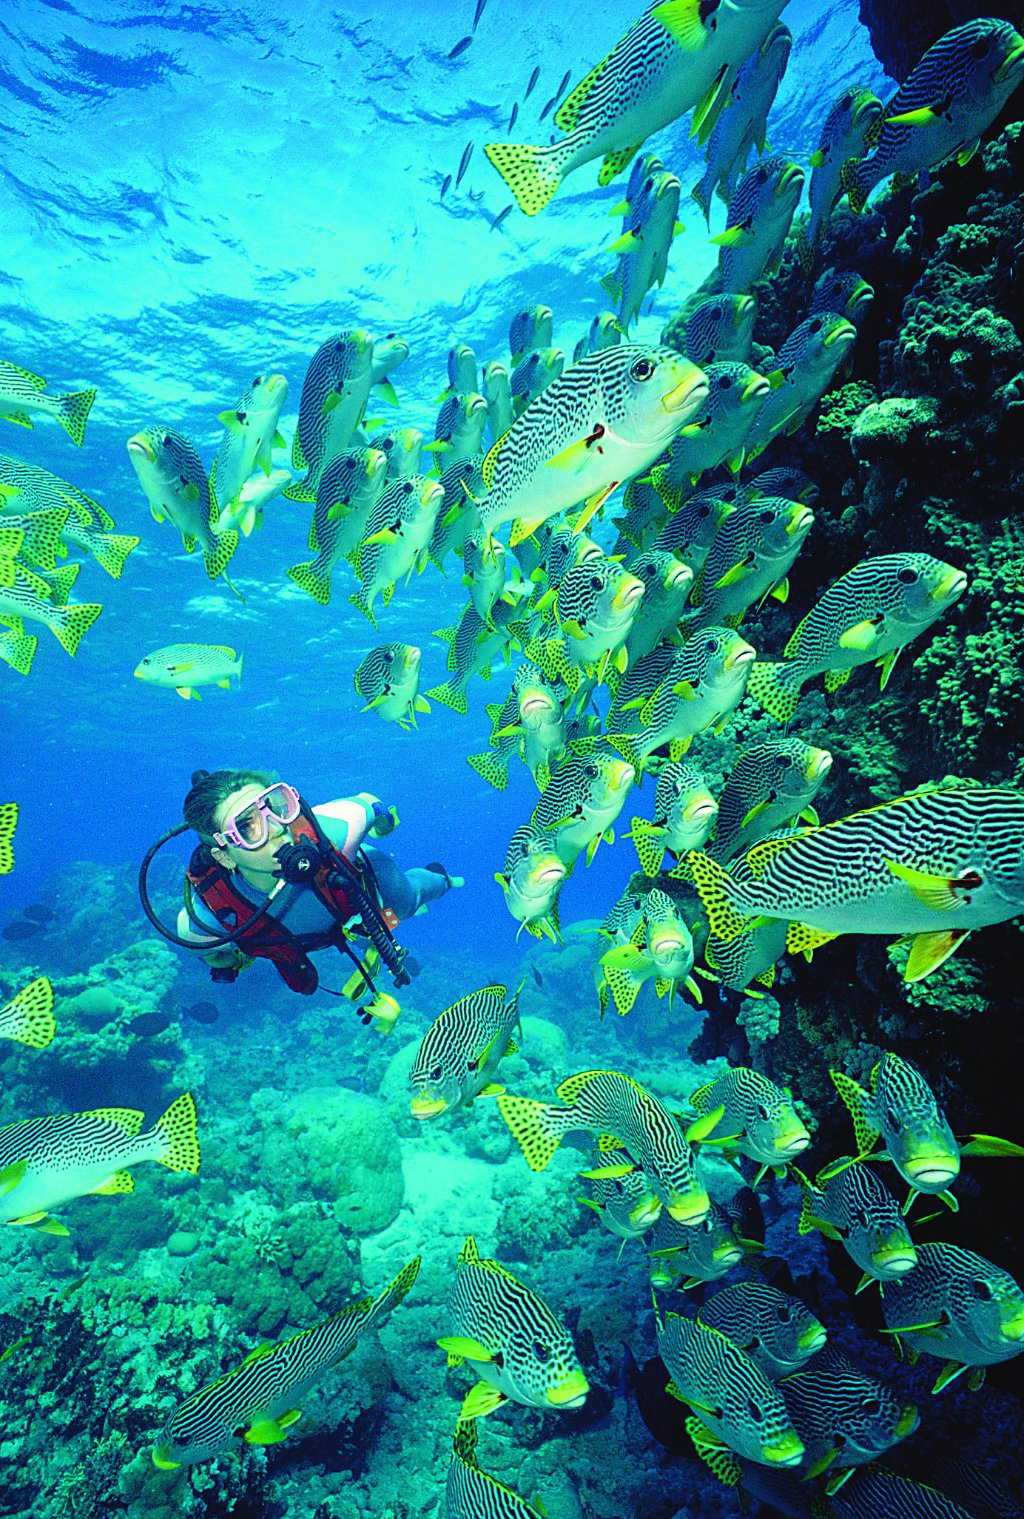 Cairns attractions night diving cairns great barrier reef australia cairns attractions - Dive great barrier reef ...